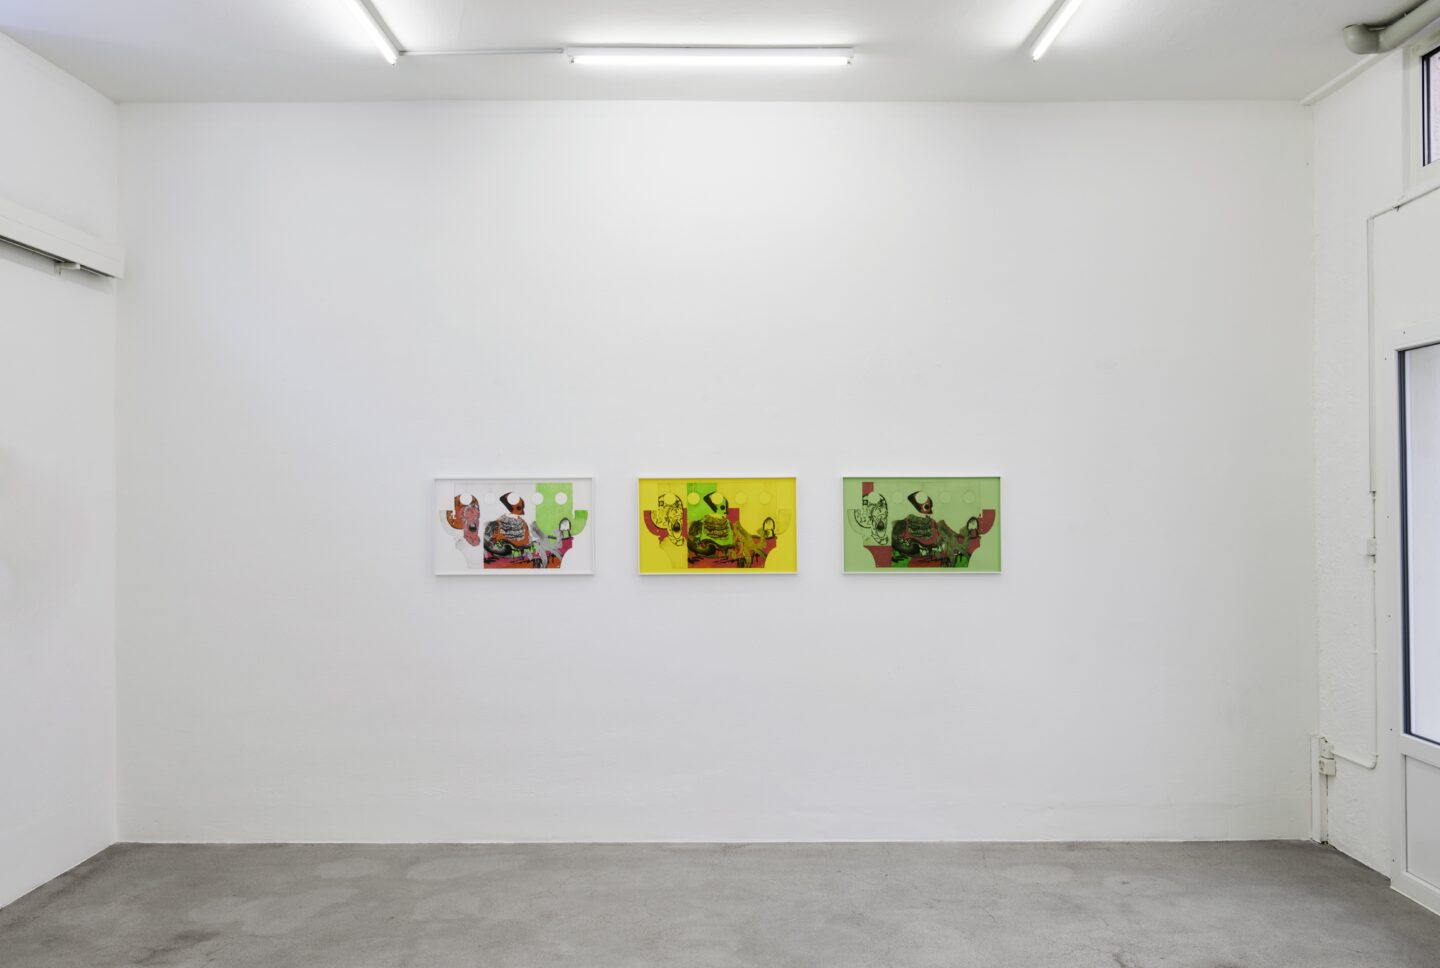 Exhibition View Groupshow «Intaglio and Lithography: Works on Paper; view on Cédric Eisenring, Casanova, 2020» at Edition VFO, Zurch, 2020 / Photo: Sabina Bosch / Courtesy: the artists and Edition VFO